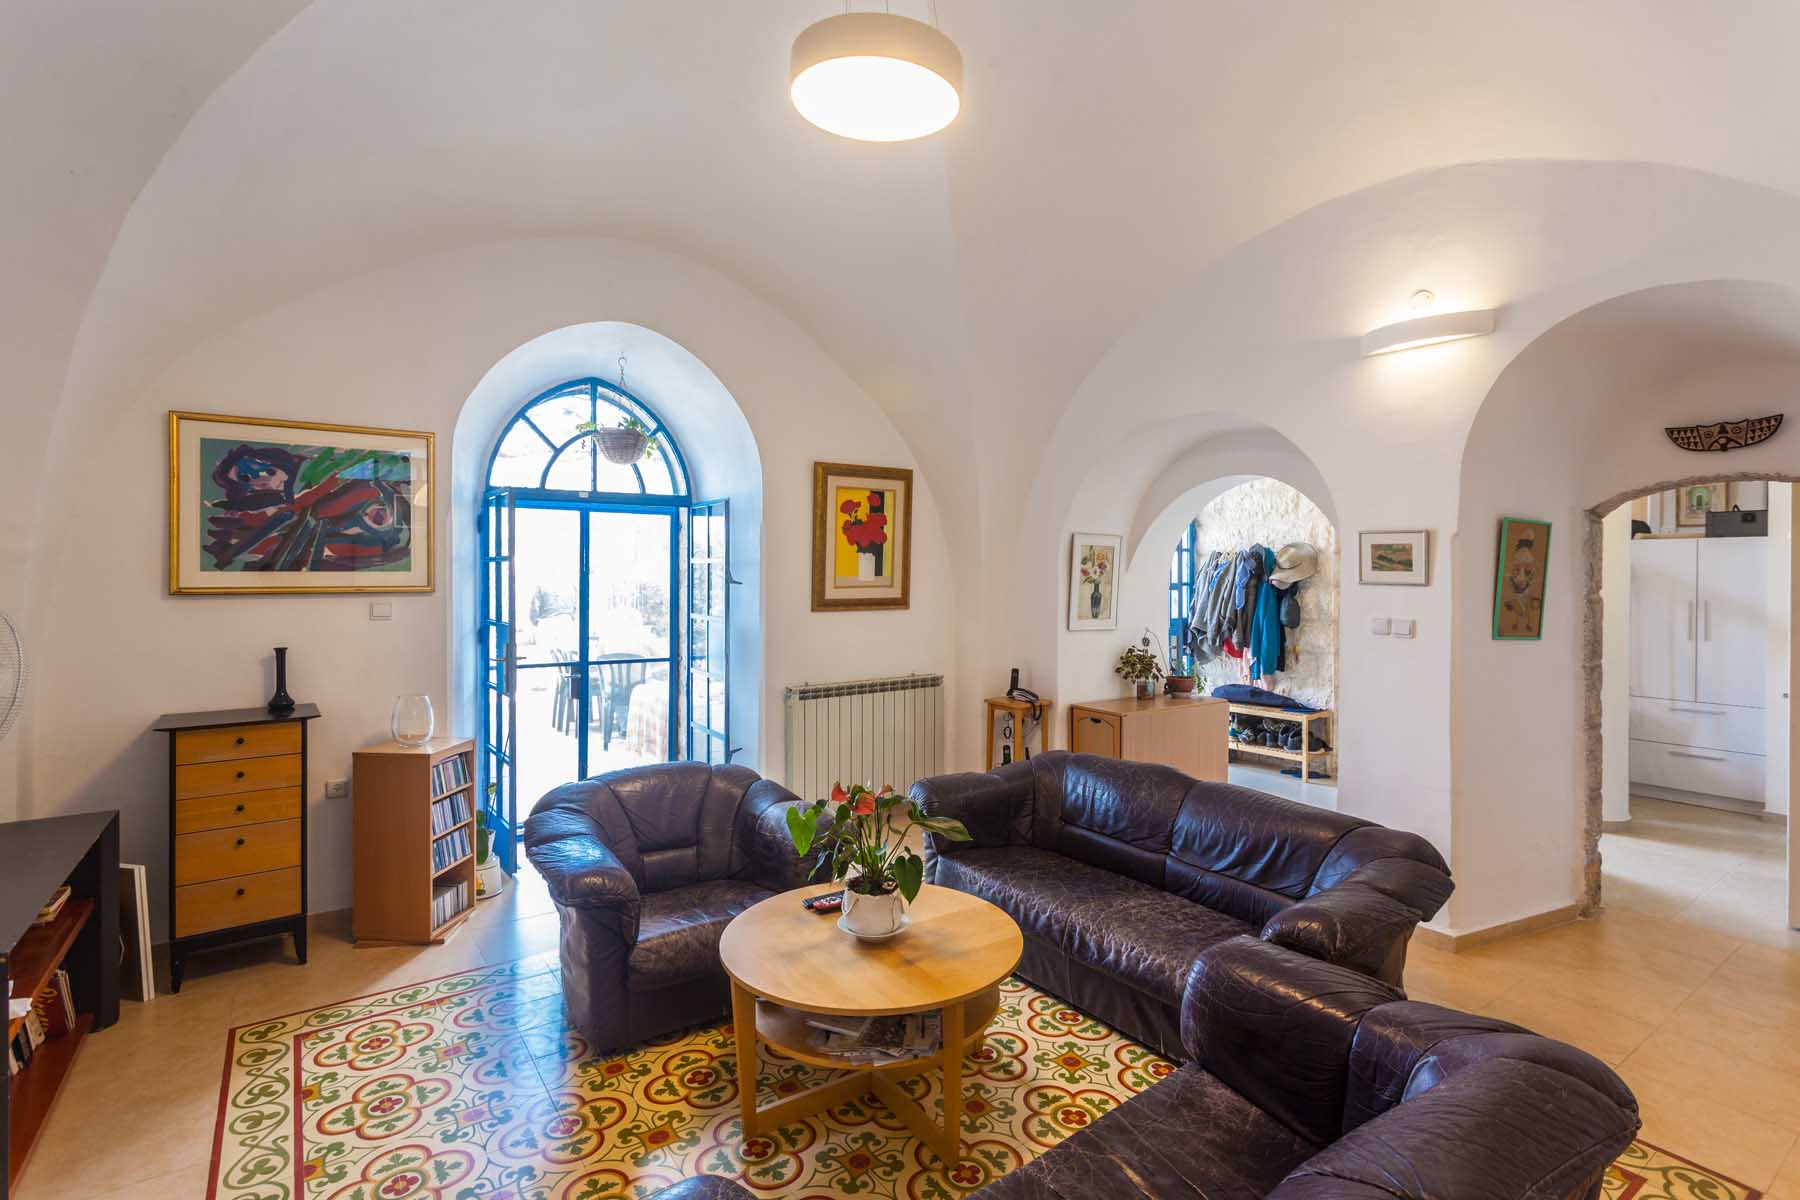 Single Family Home for Sale at Extraordinary Villa in Historic Ein Karem Village Jerusalem, Israel